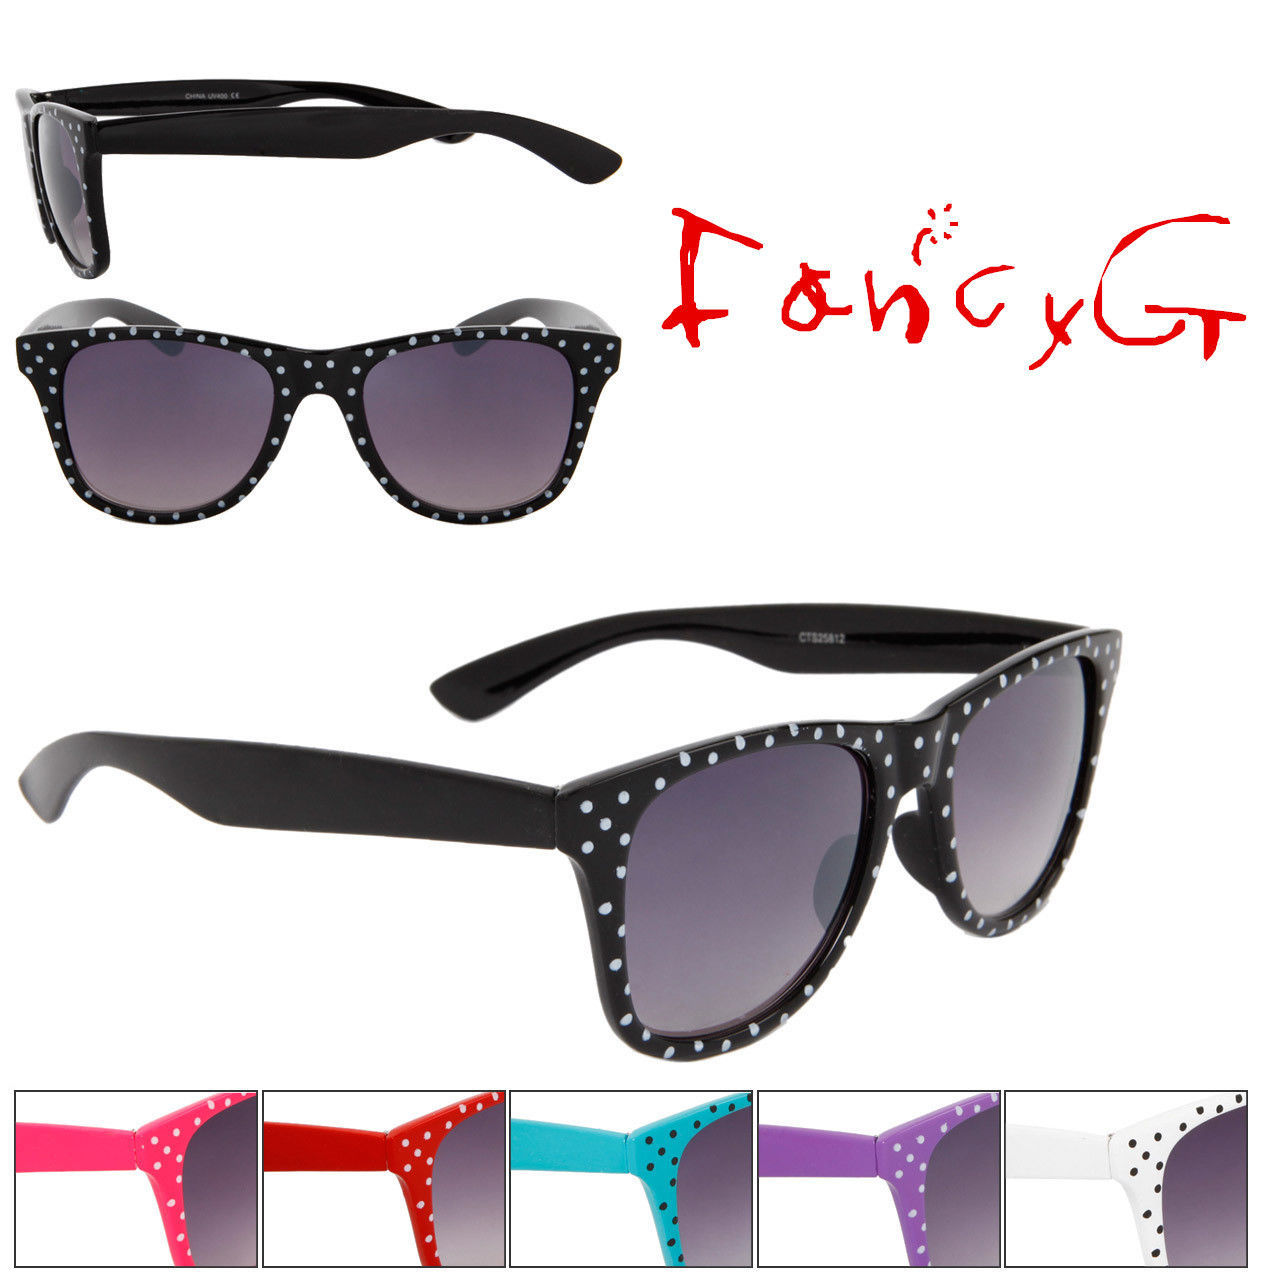 12 Assorted Unisex Fashion Sunglasses Polka Dots UV 400 Protection